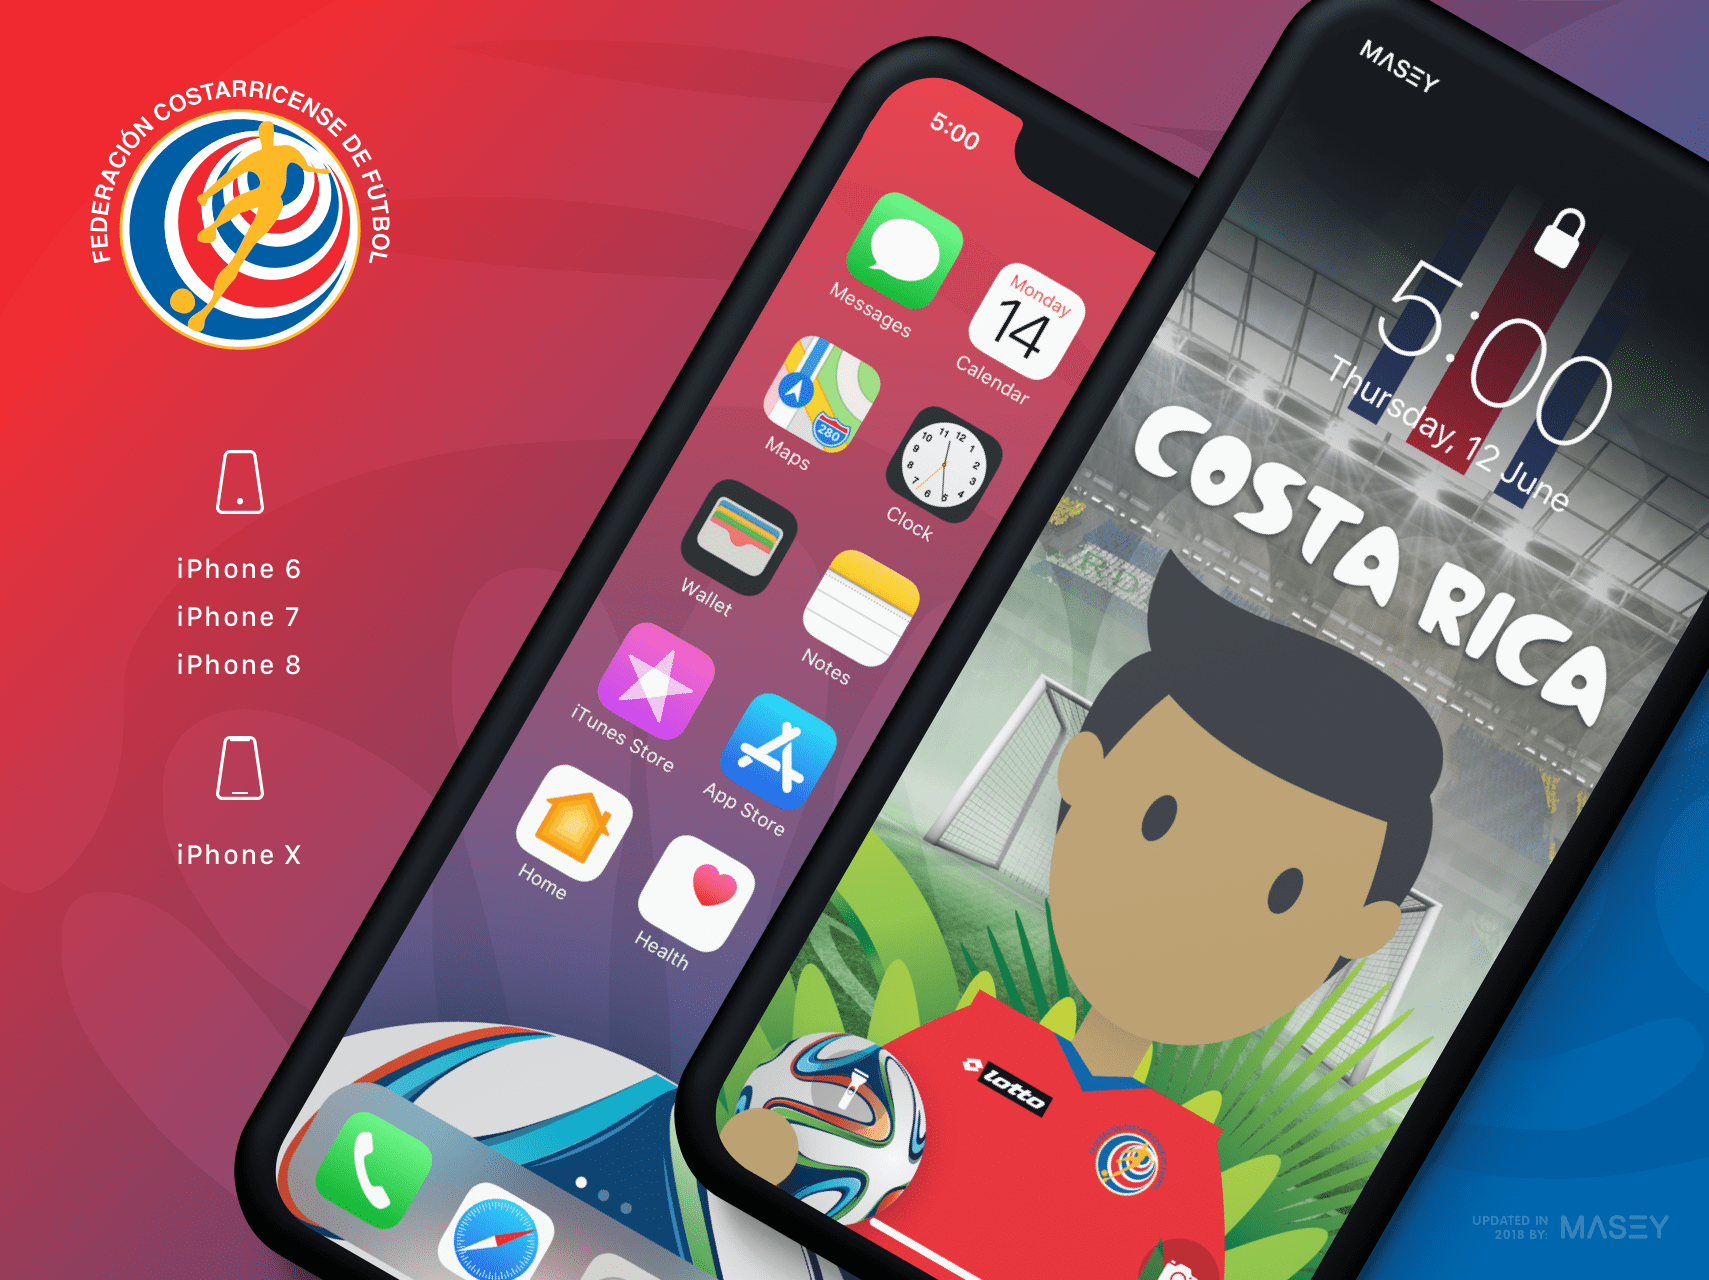 Team Costa Rica iPhone Wallpaper